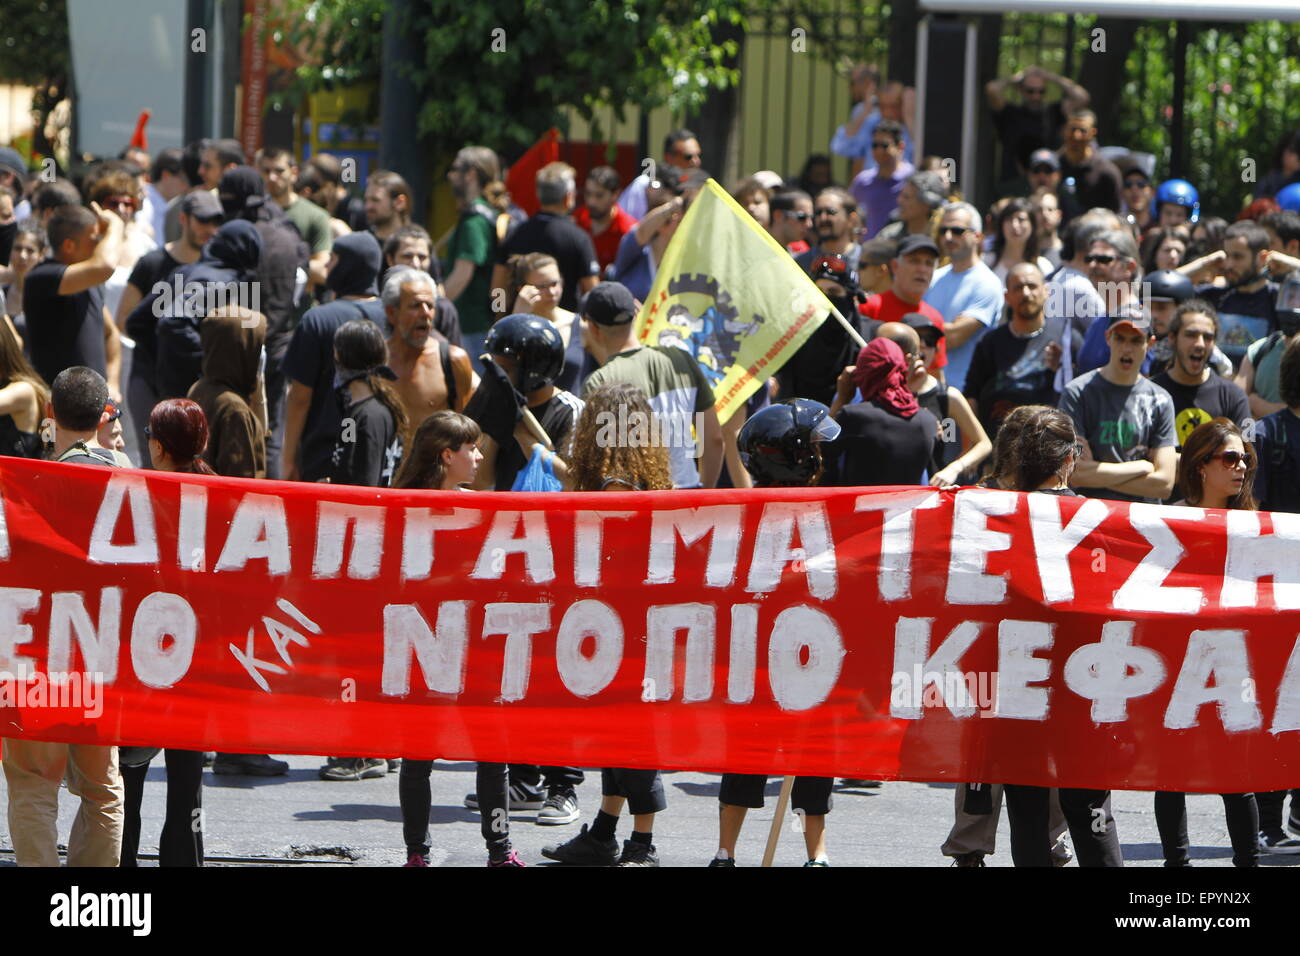 Athens, Greece. 23rd May 2015. The protesters have assembled on the foot of the street leading to the German Embassy, - Stock Image